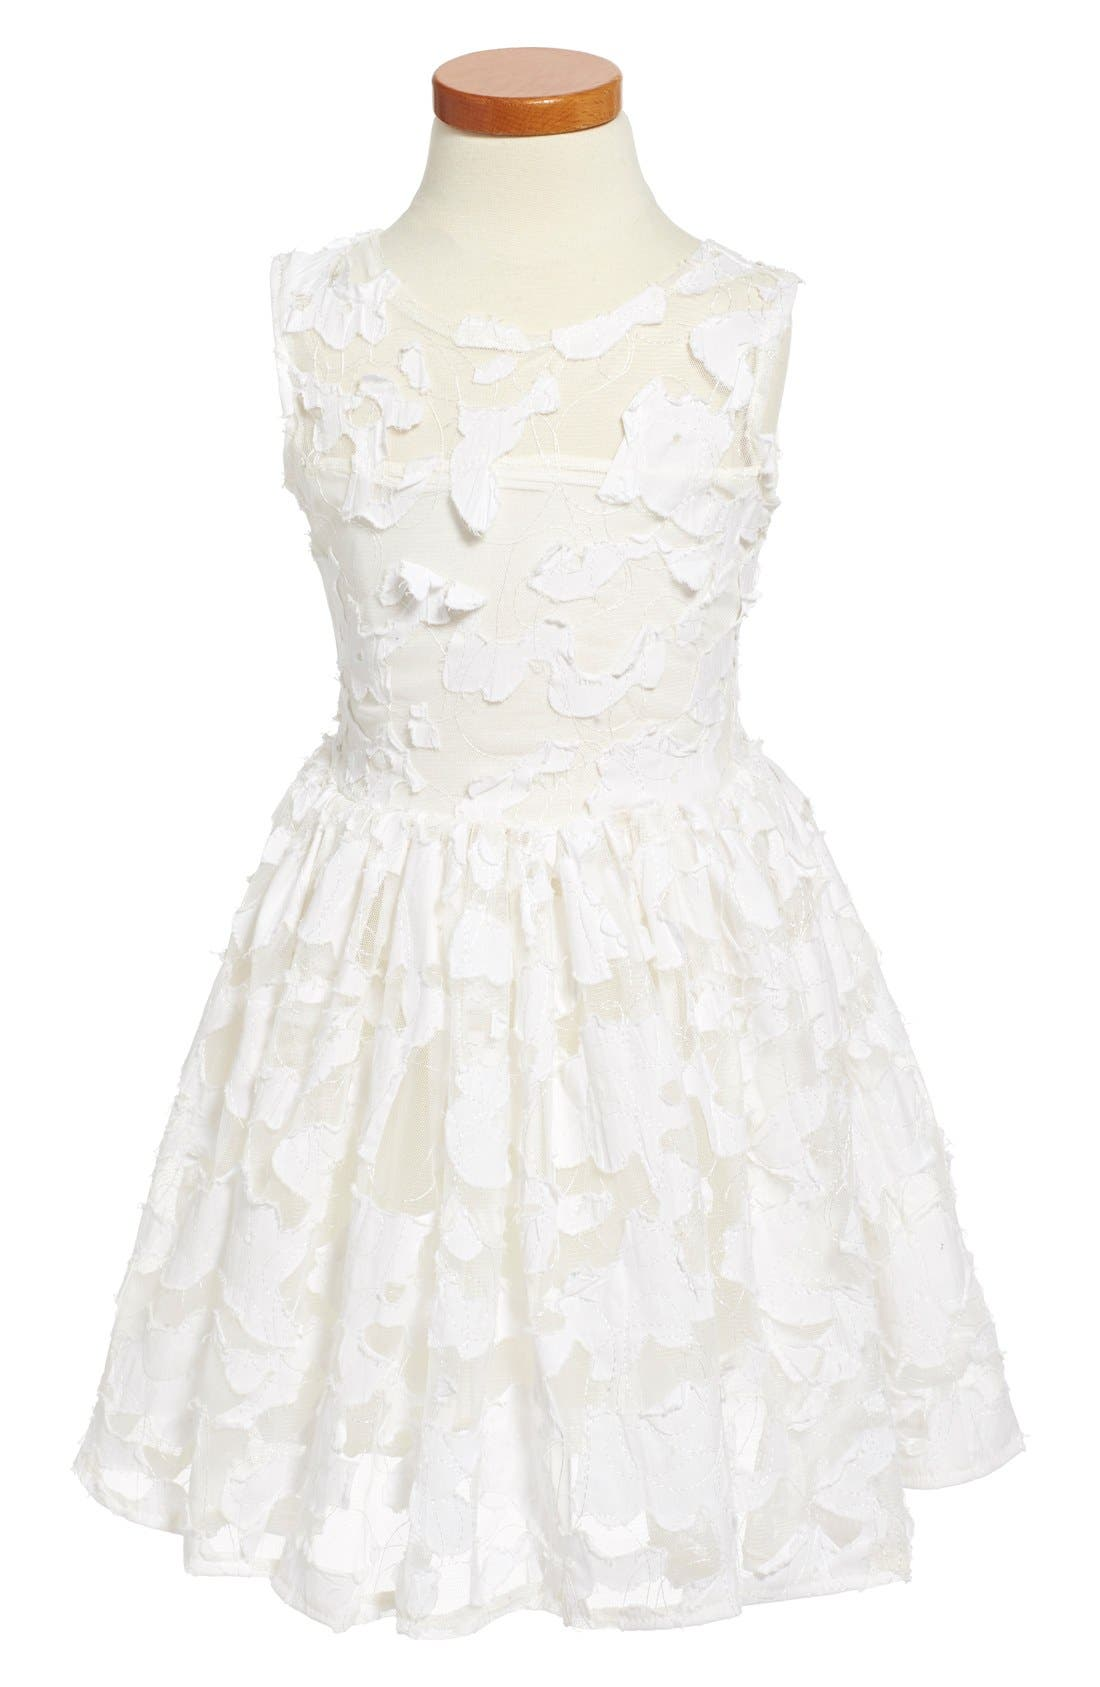 Alternate Image 1 Selected - Fiveloaves Twofish 'Pretty in Ivory' Party Dress (Toddler Girls, Little Girls & Big Girls)